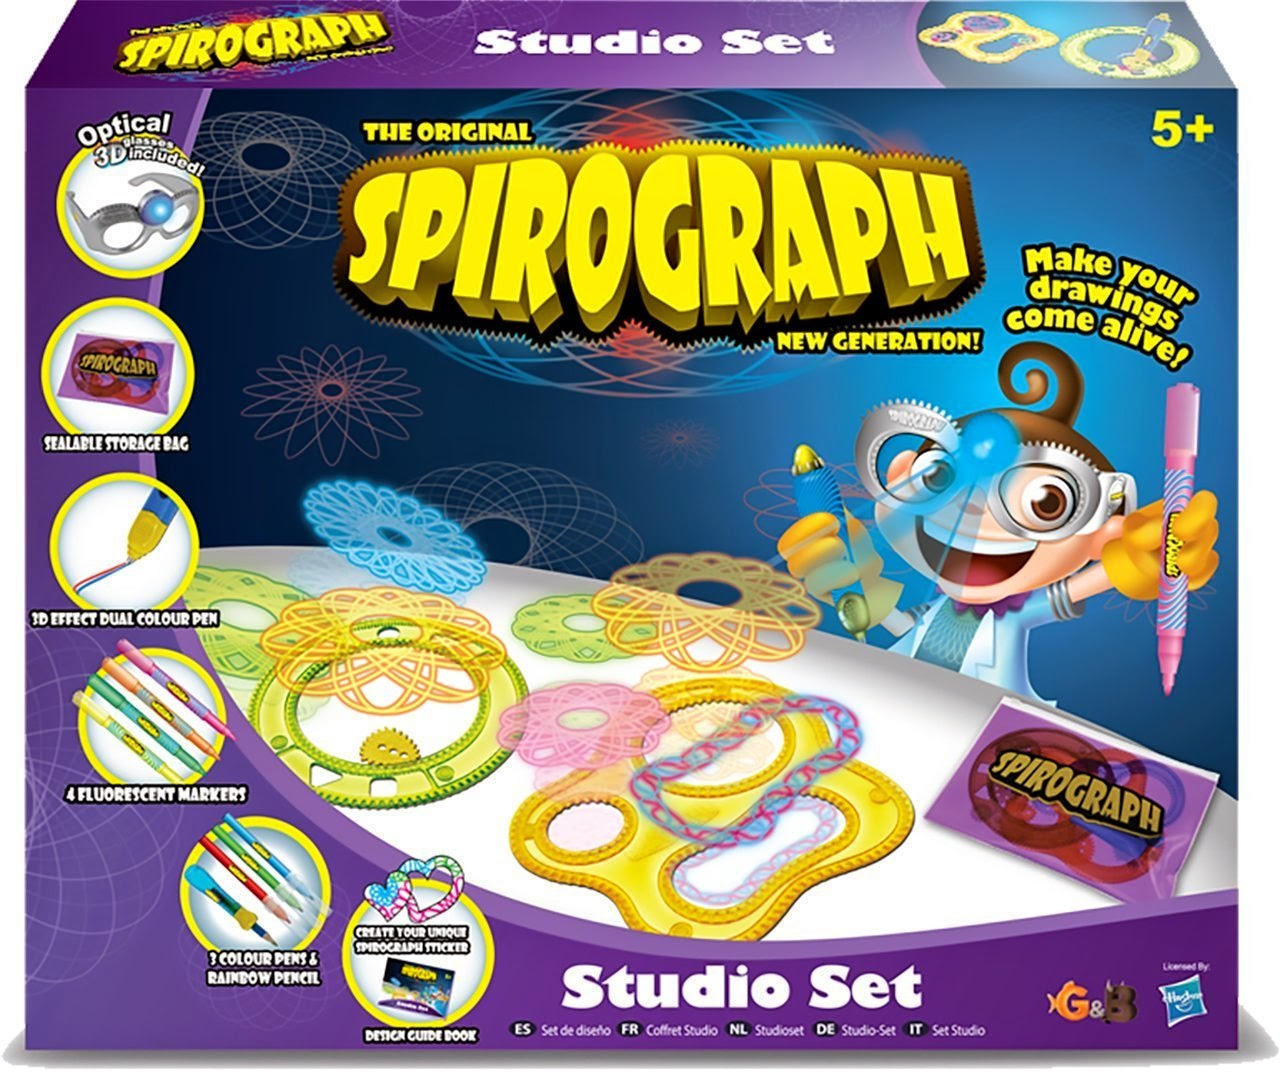 , Win 1 of 5 Spirograph Optical 3D Artist Sets